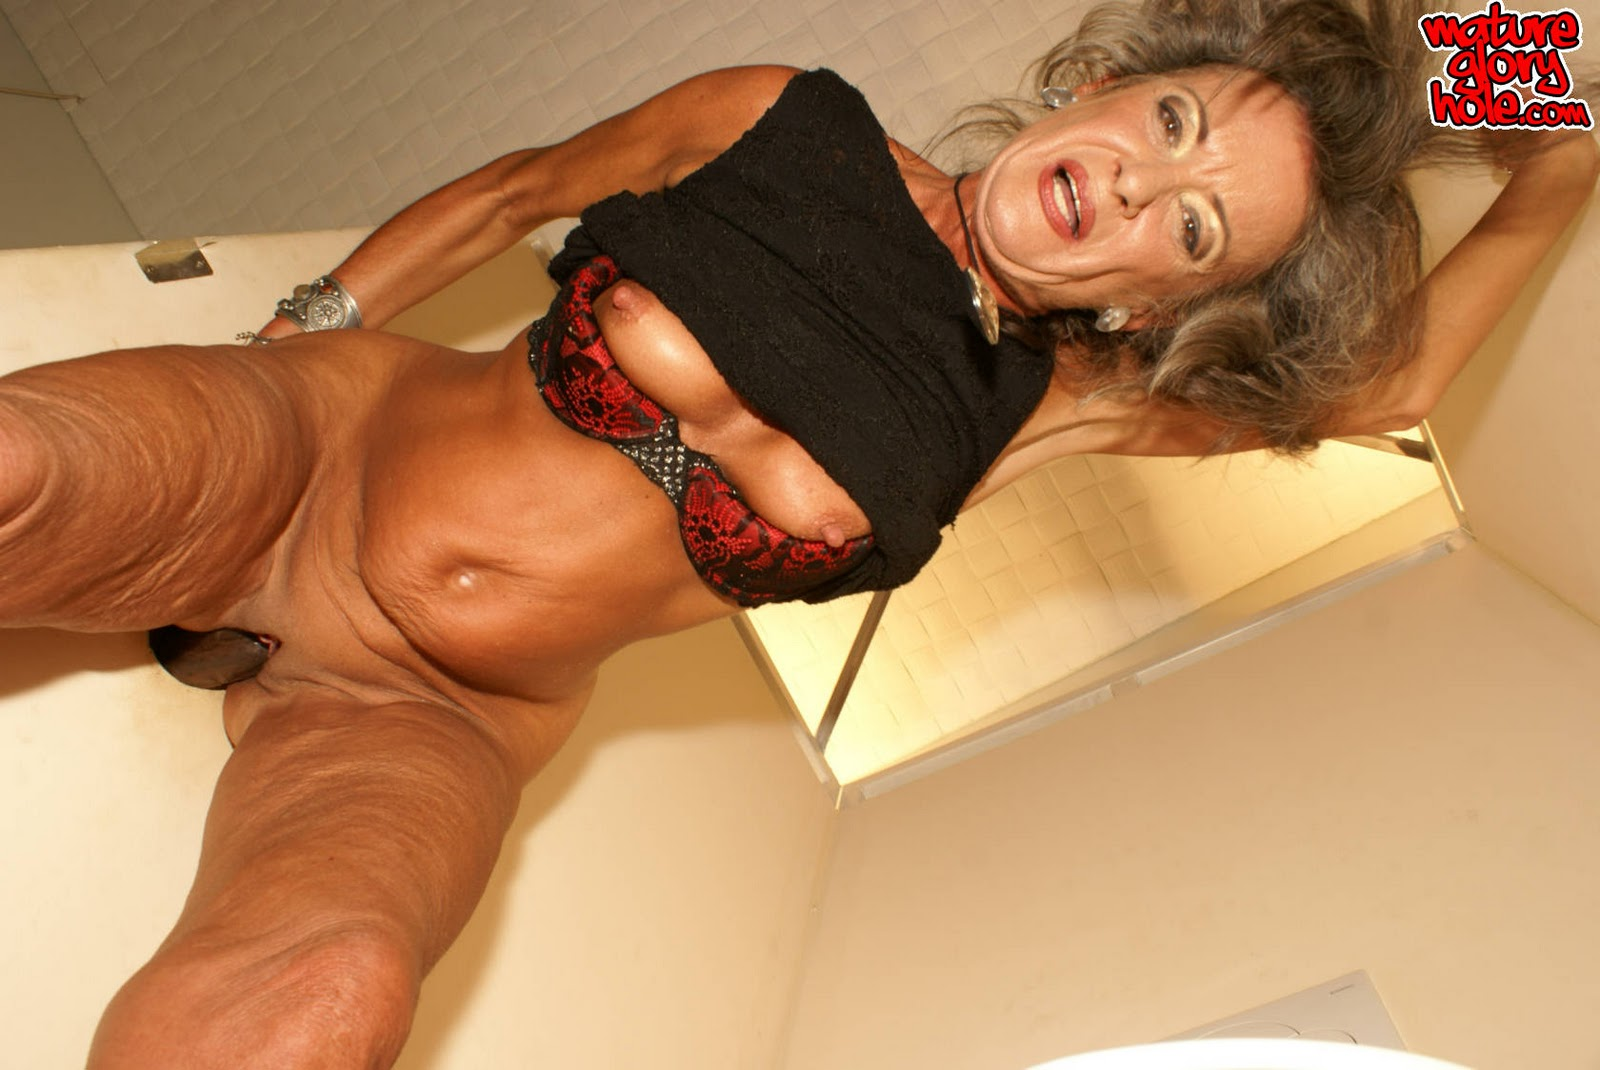 Mature Glory Hole - Agneta 53. Please Request OR It will Be Back Soon!